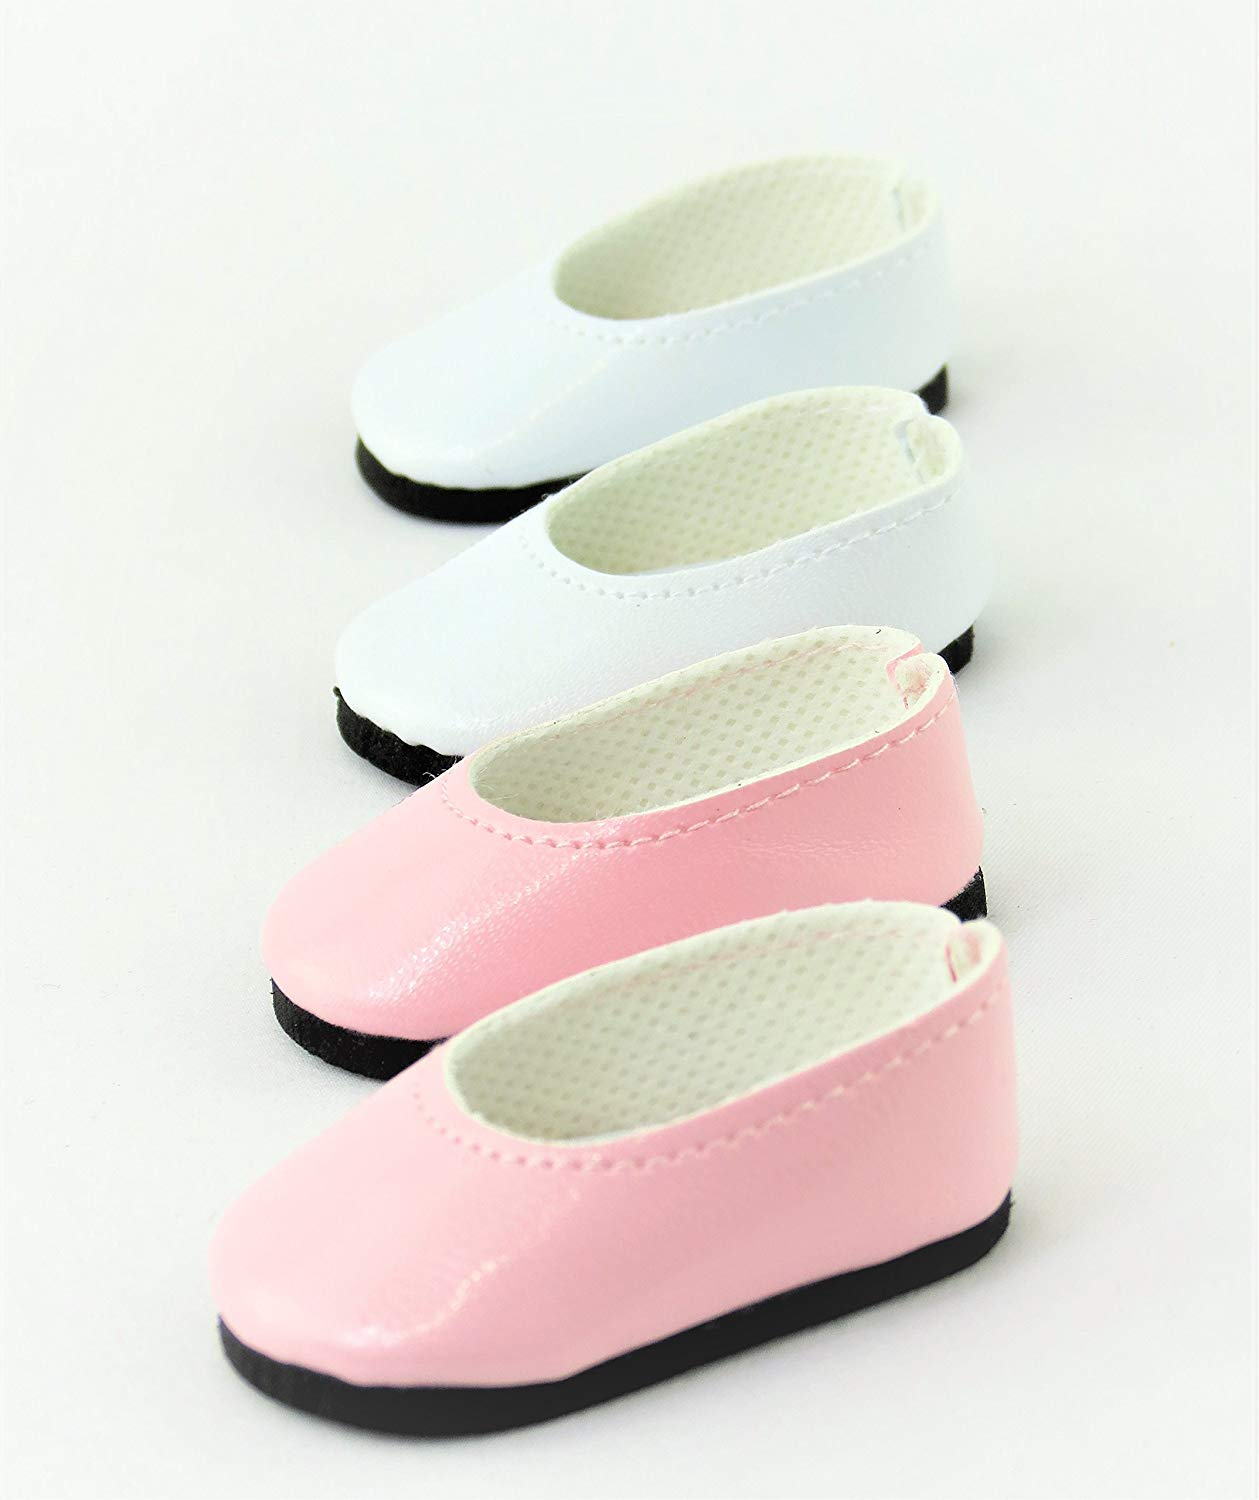 """2 pack of Slip On Shoes: White and Pink 